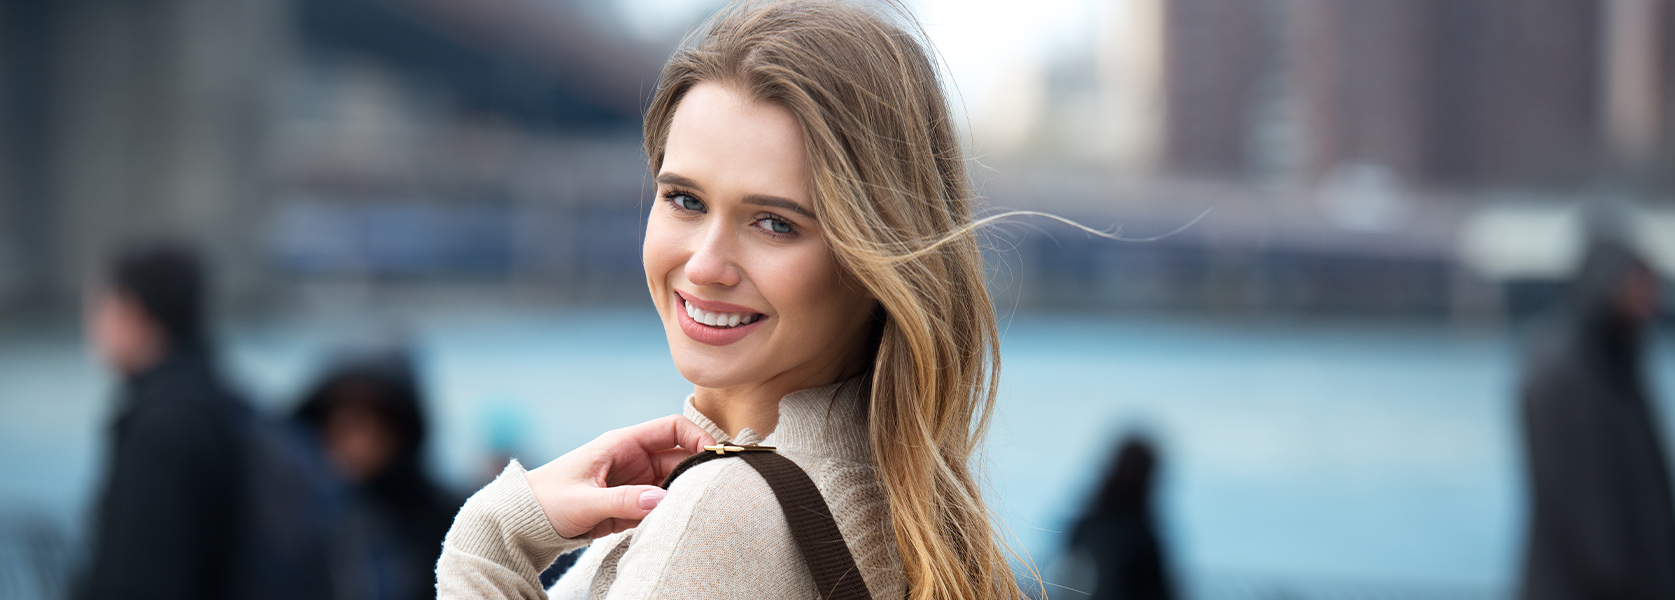 Lingual Braces & Clear Aligners